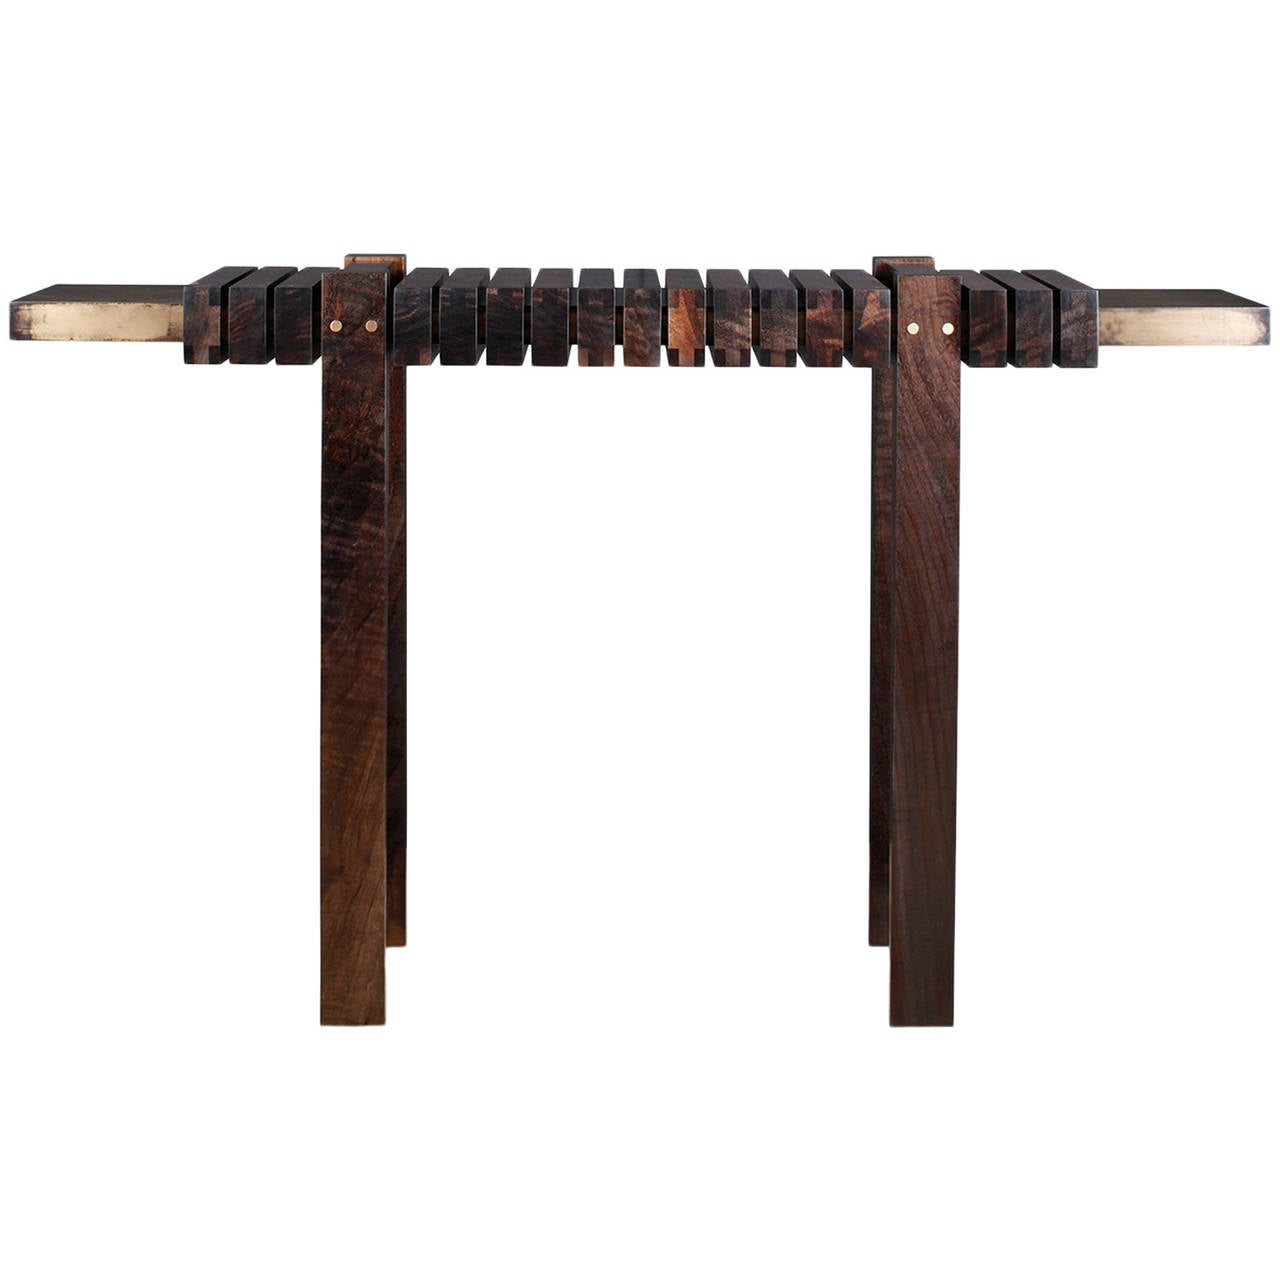 """The Bridge"" Console Table in Smoked Walnut and Etched Bronze by Studio Roeper"